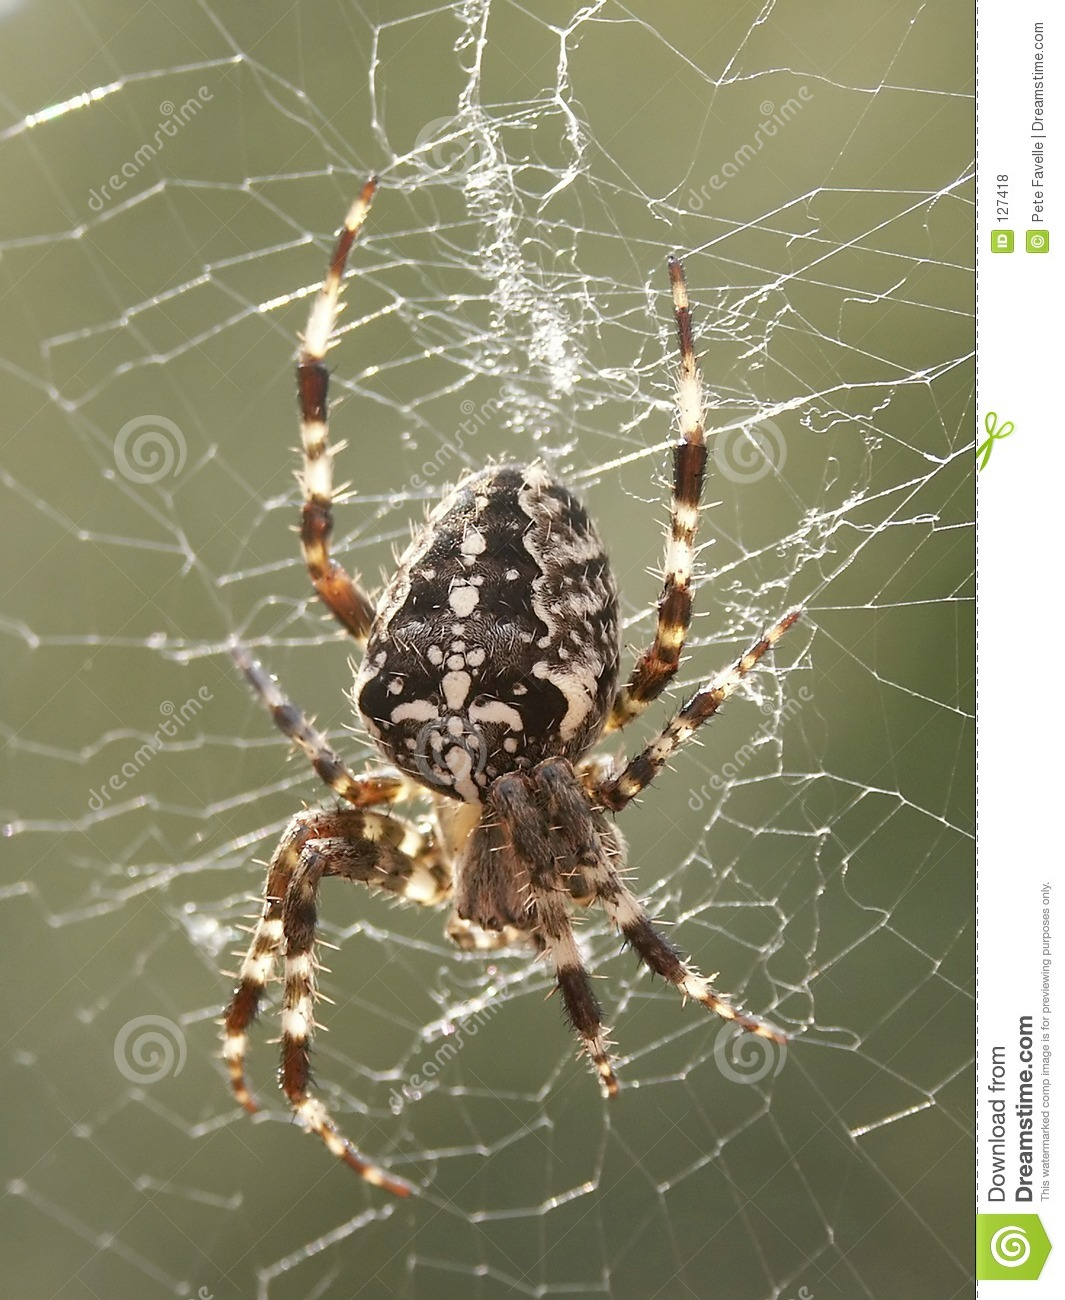 Araneus Diadematus Royalty Free Stock Photos.